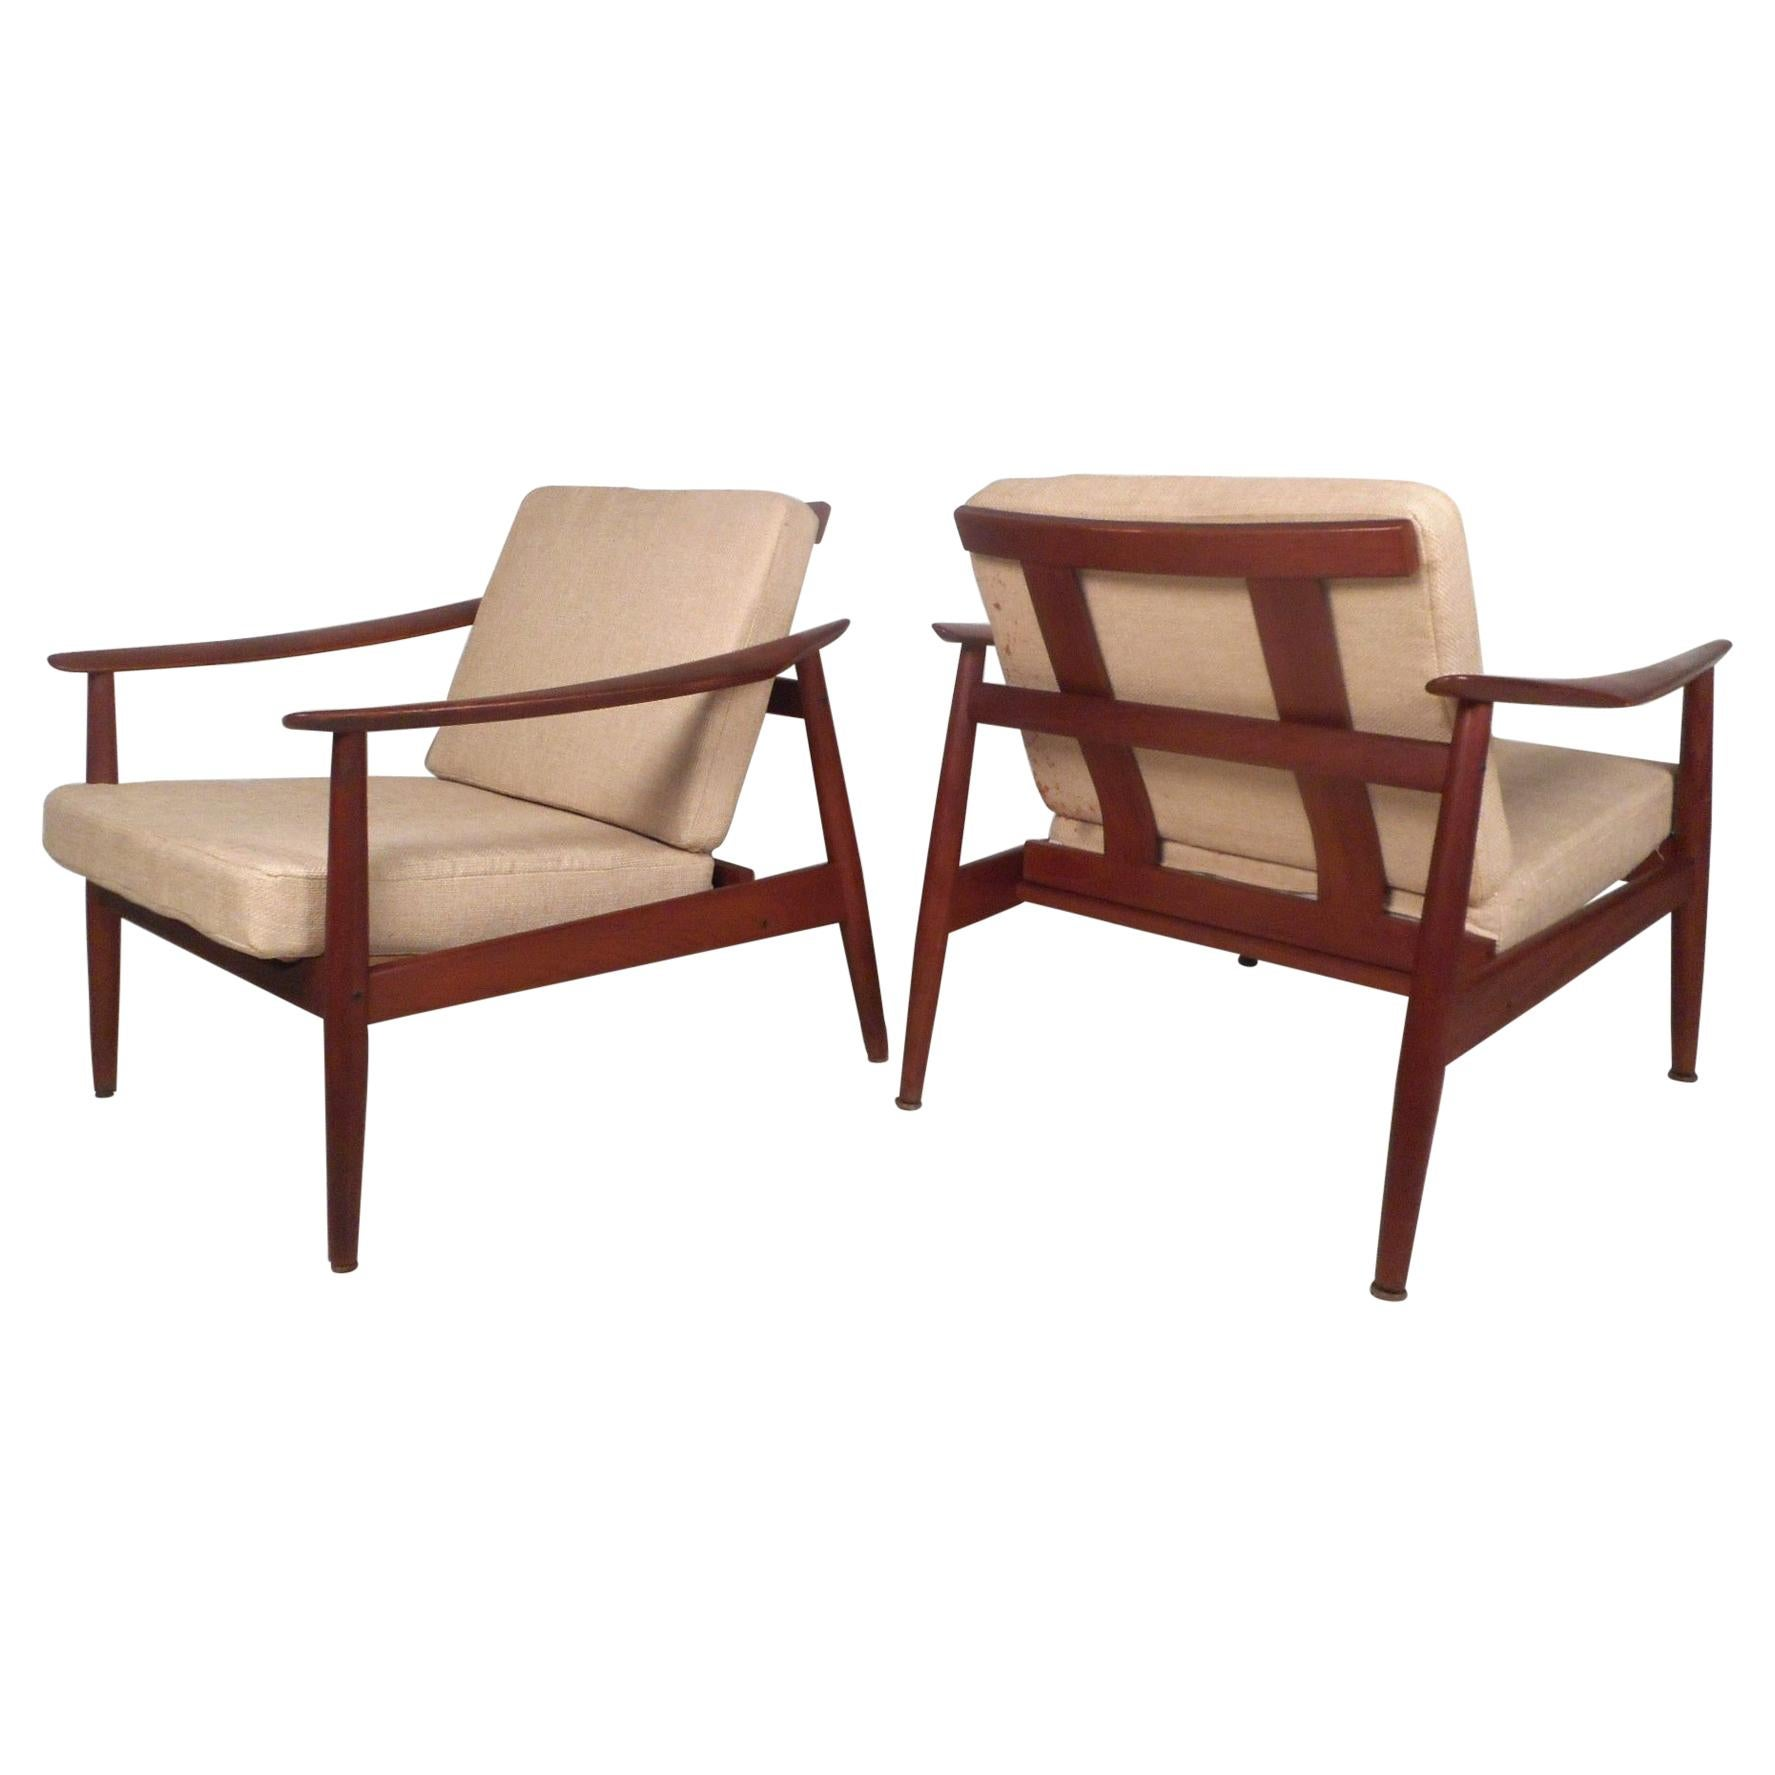 Pair of Midcentury France and Son Adjustable Lounge Chairs by John Stuart